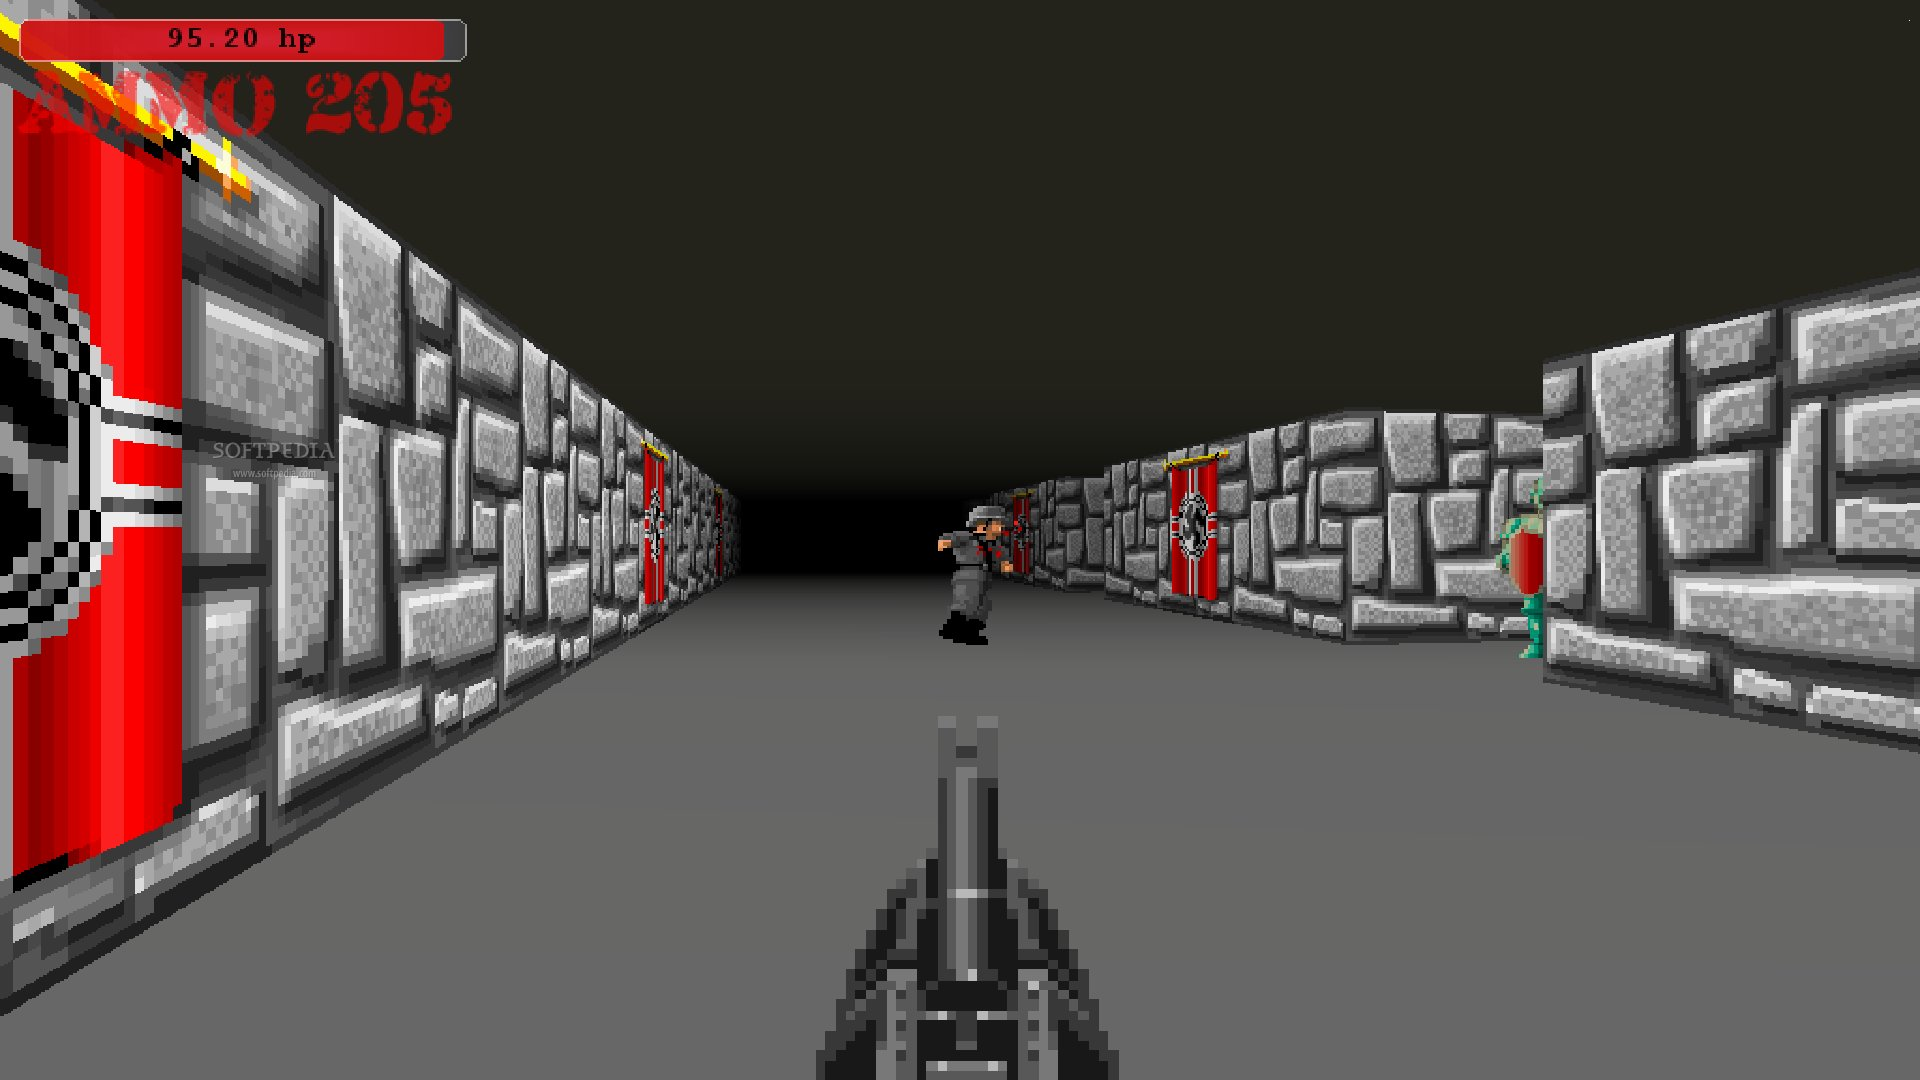 Wolfenstein 3d return to danger download for Wolfenstein 3d